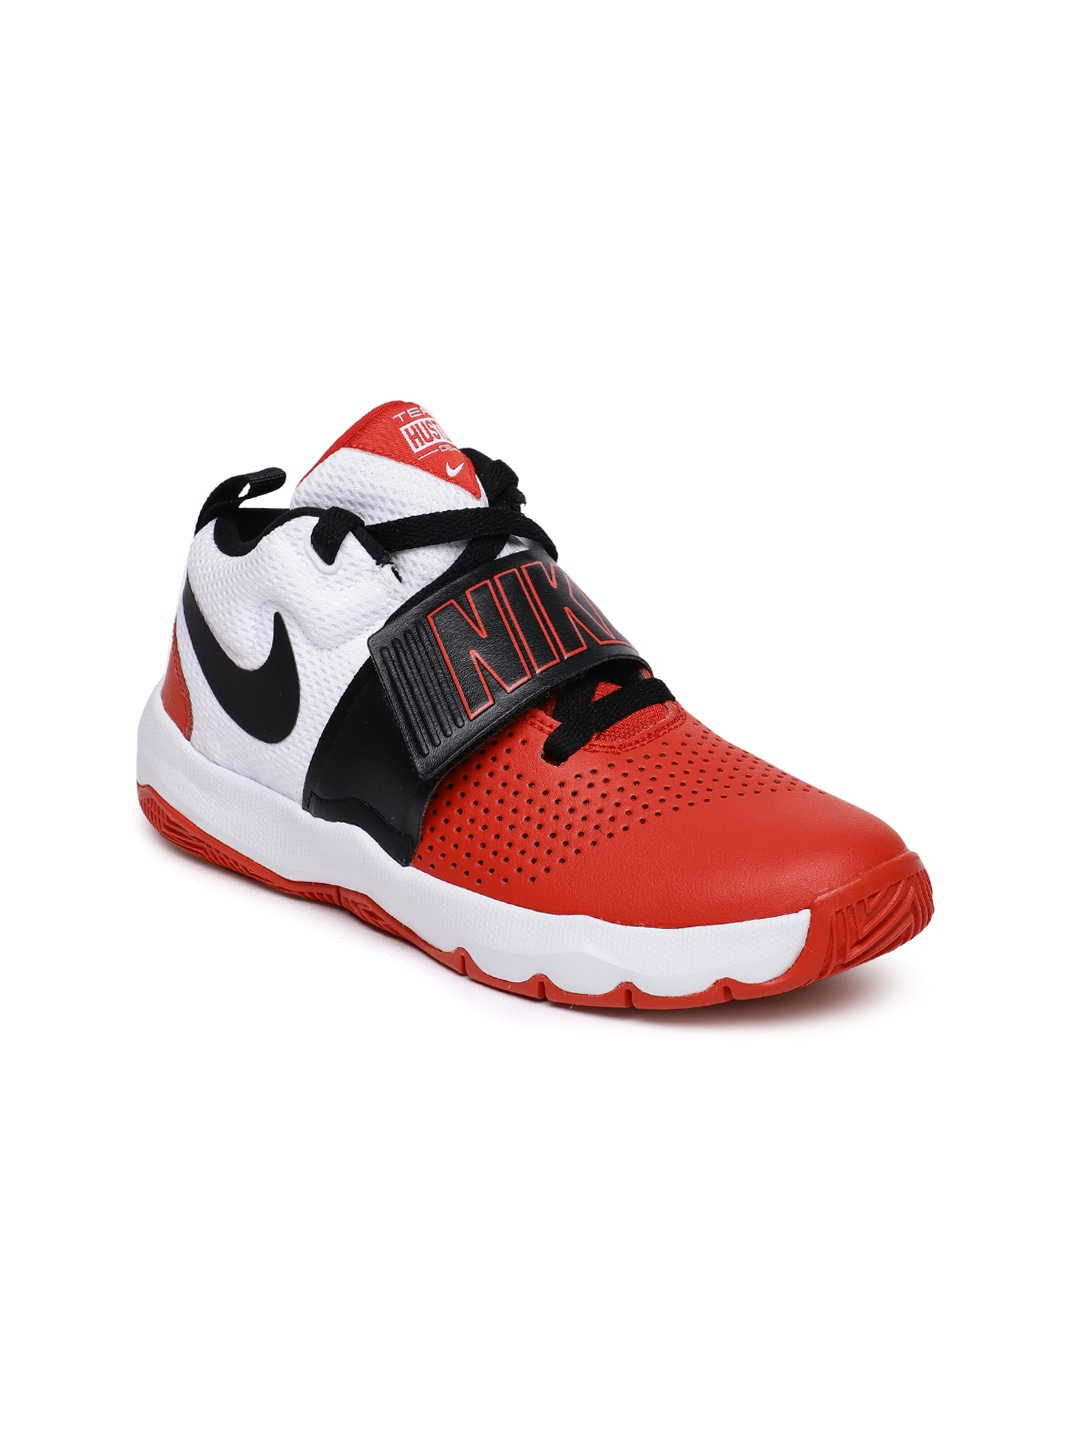 super popular a7fac 4409e Basket Ball Shoes - Buy Basket Ball Shoes Online  Myntra